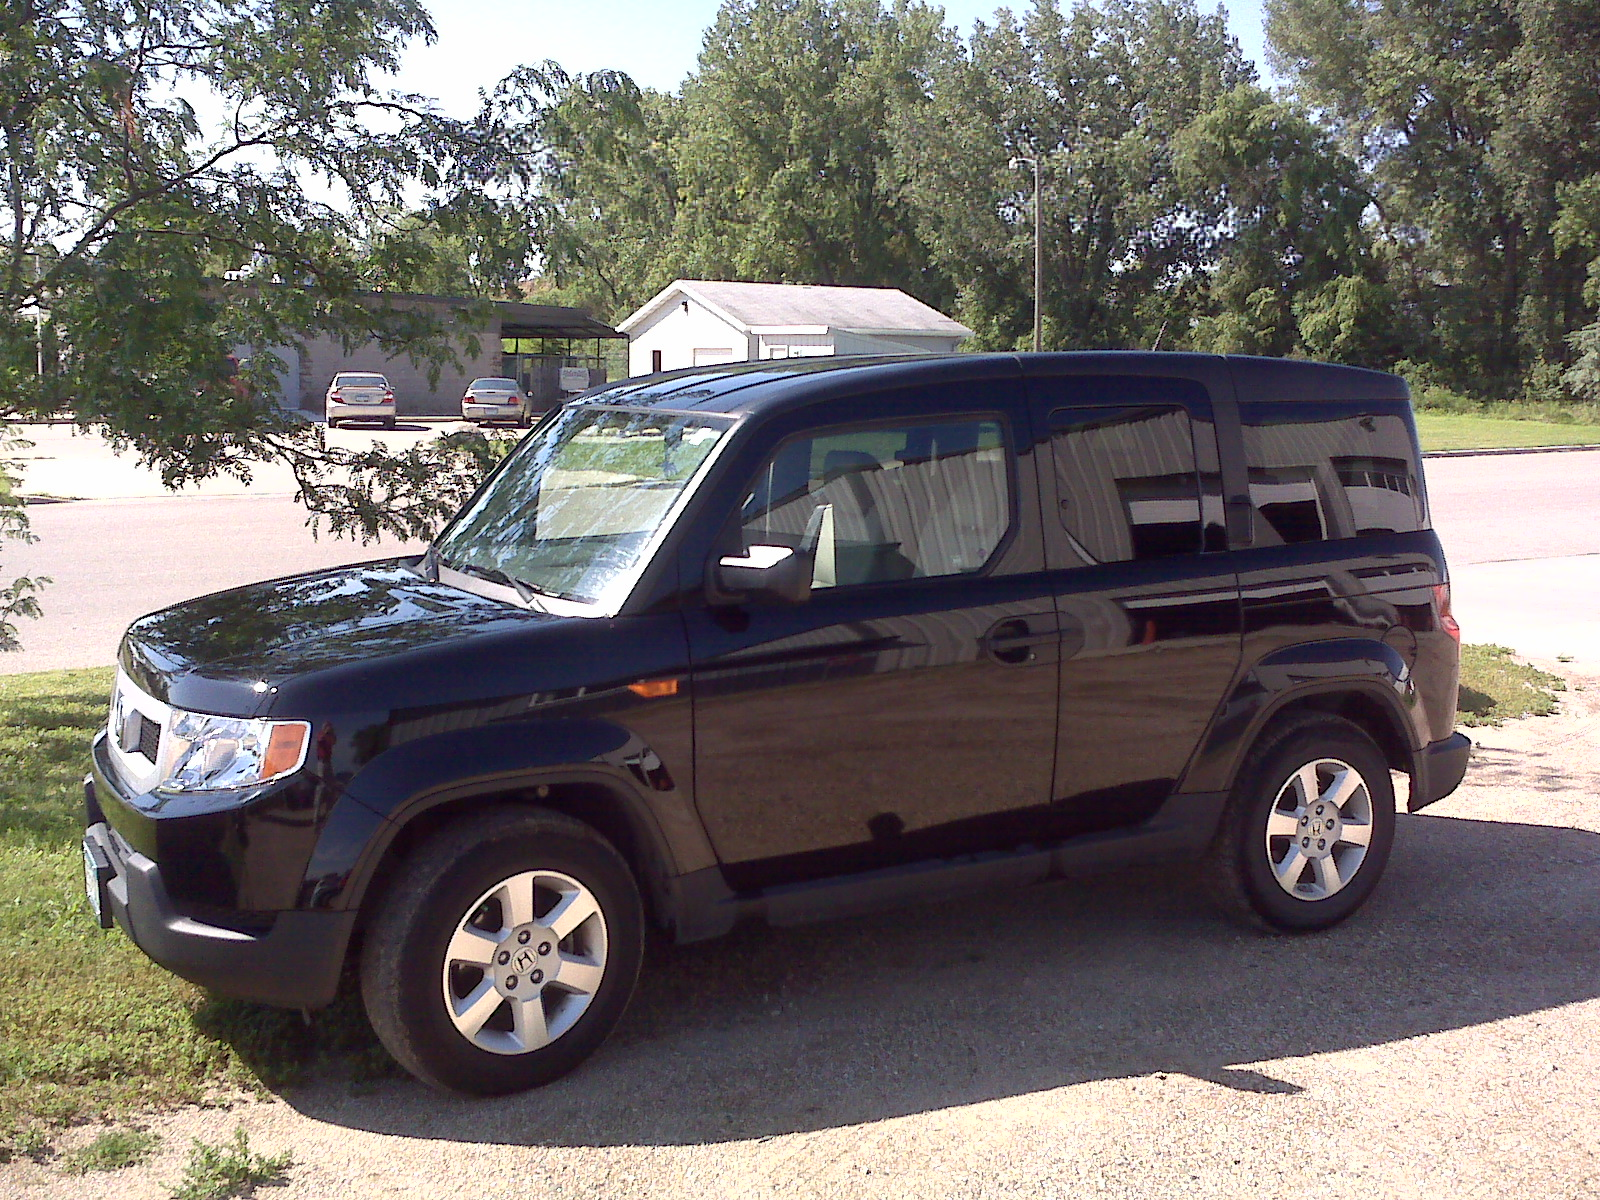 File2010 Honda Element Ex With A 2point Cylinder Engine And All Wheel Drive Jpg